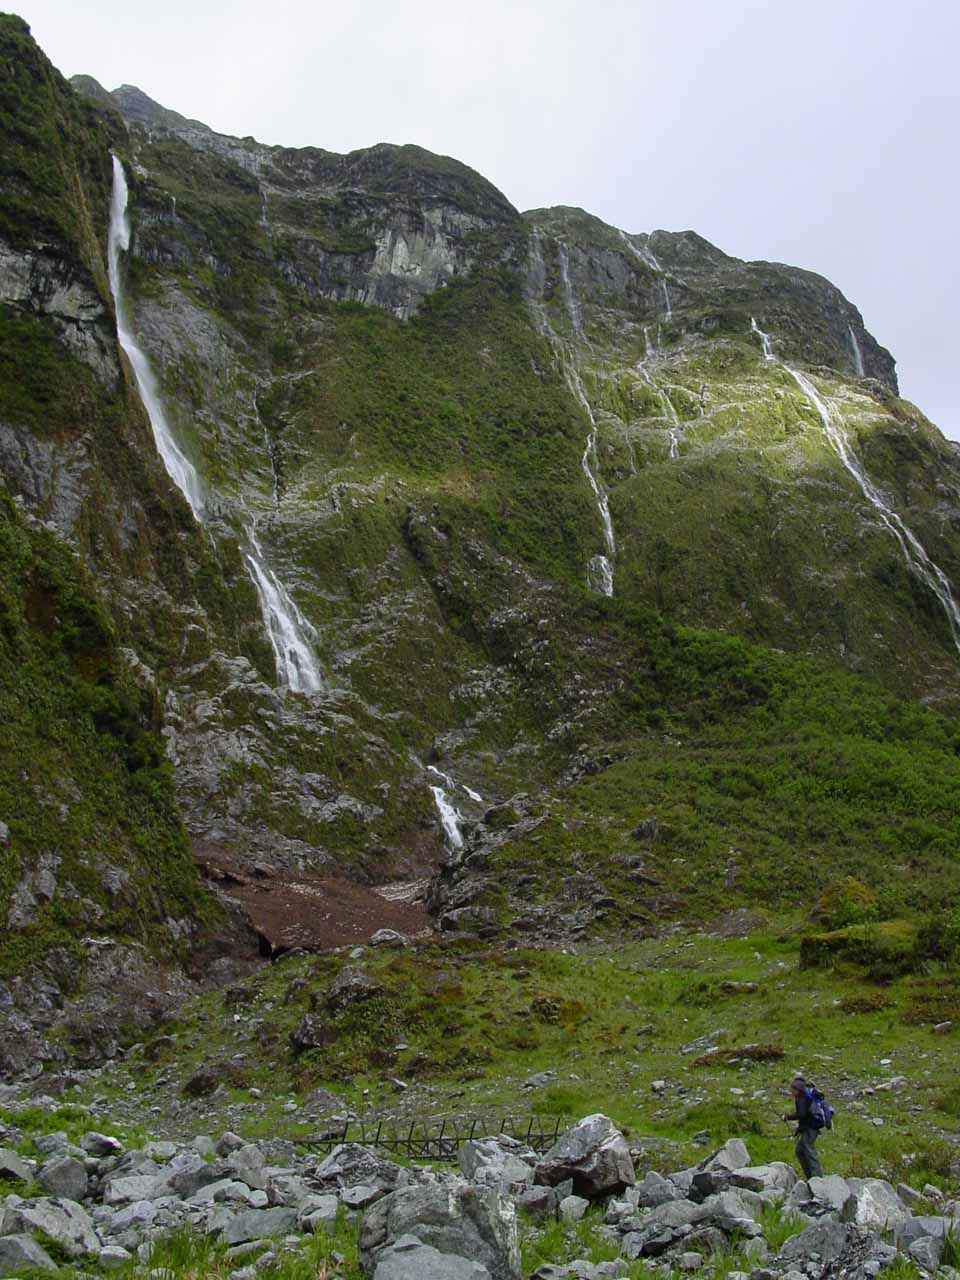 Julie checking out some of the waterfalls on day 3 of the Milford Track